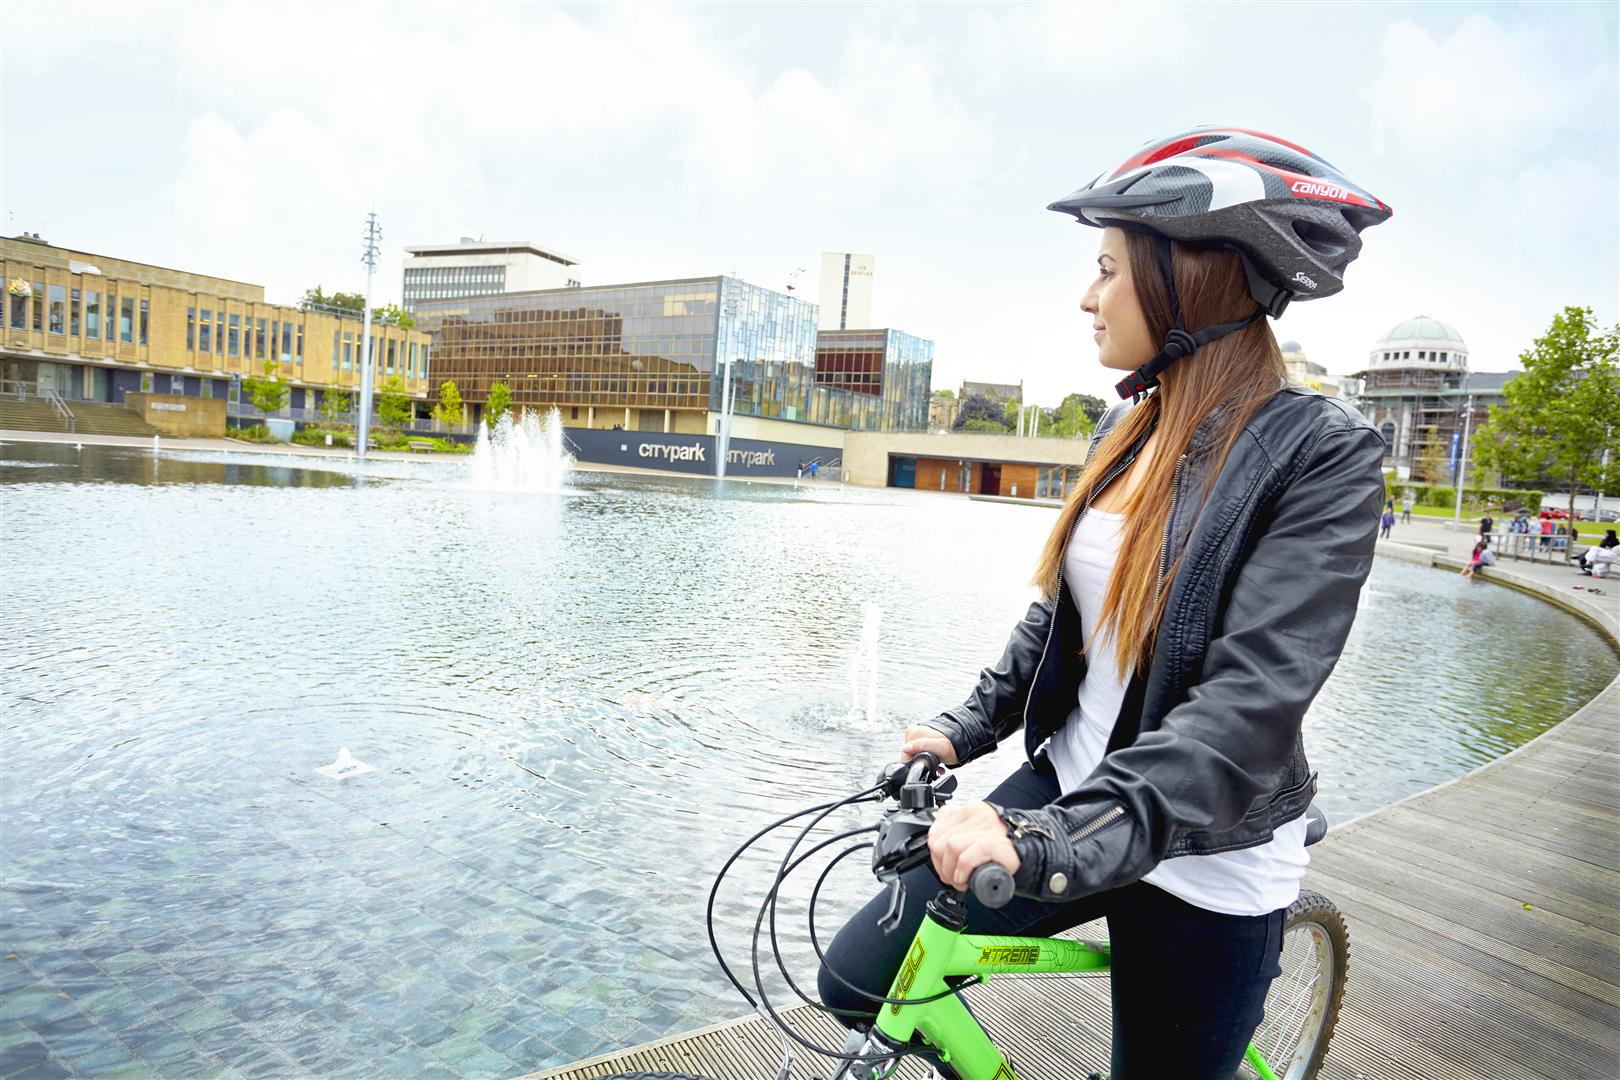 FREE cycling inspired public events happening at #cycleactivecity in #Bradford, 11 May. @bradfordmdc  @CityParkBD   https://t.co/kkN5U9LxjF https://t.co/W2WiCrb0It